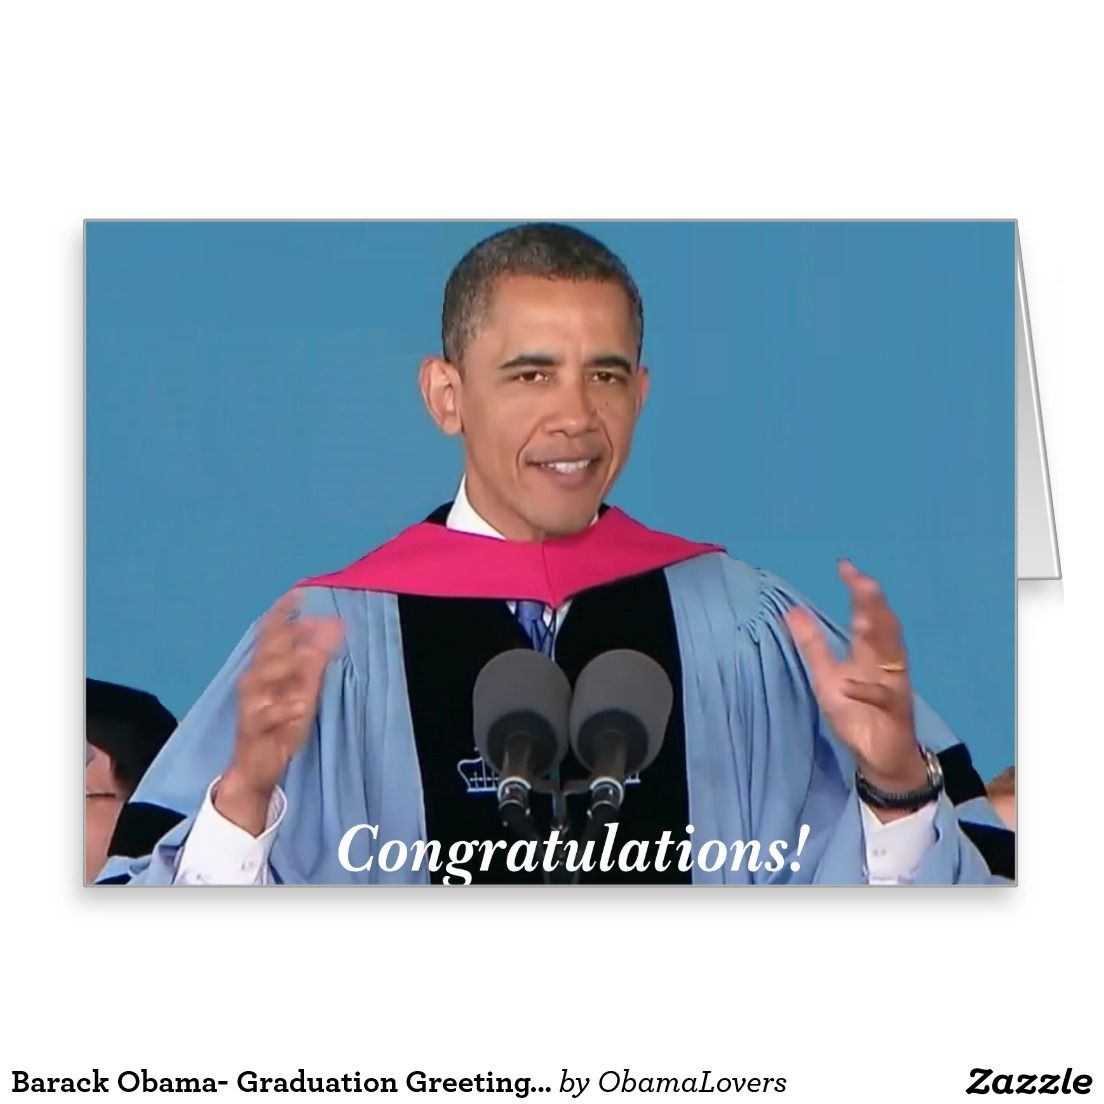 Barack obama graduation card m greeting card any obama supporter barack obama graduation card m greeting card any obama supporter would love to get a graduation card with the president on it congratulating him kristyandbryce Choice Image